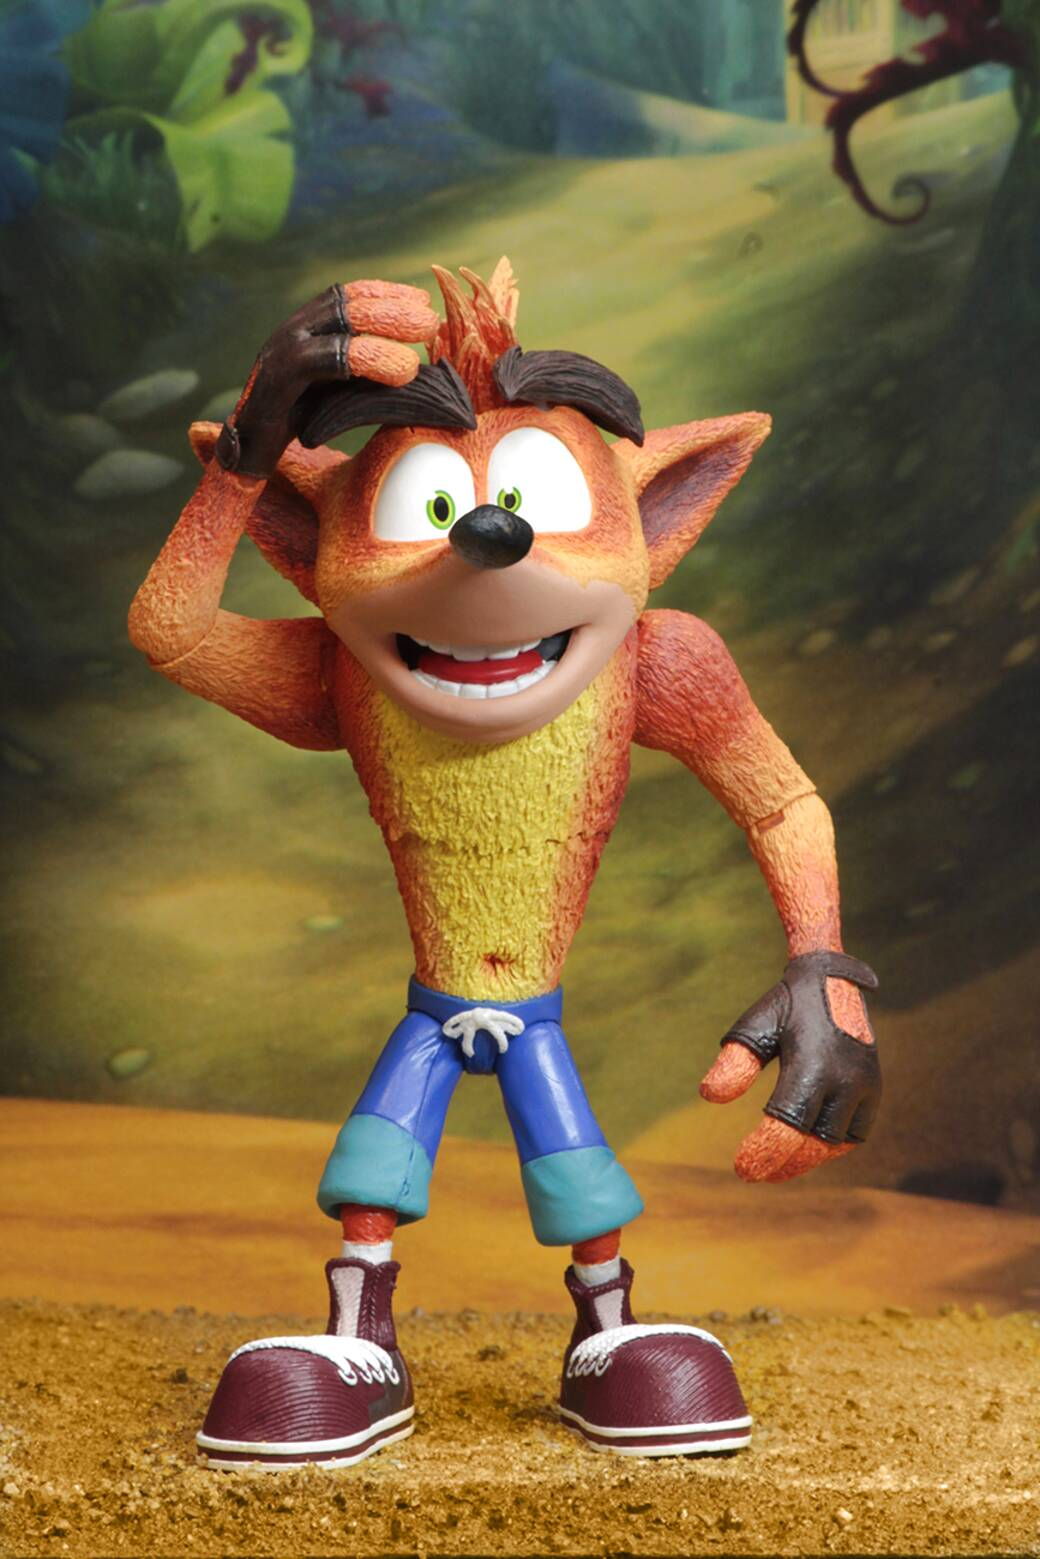 crash bandicoot figure de segunda mano